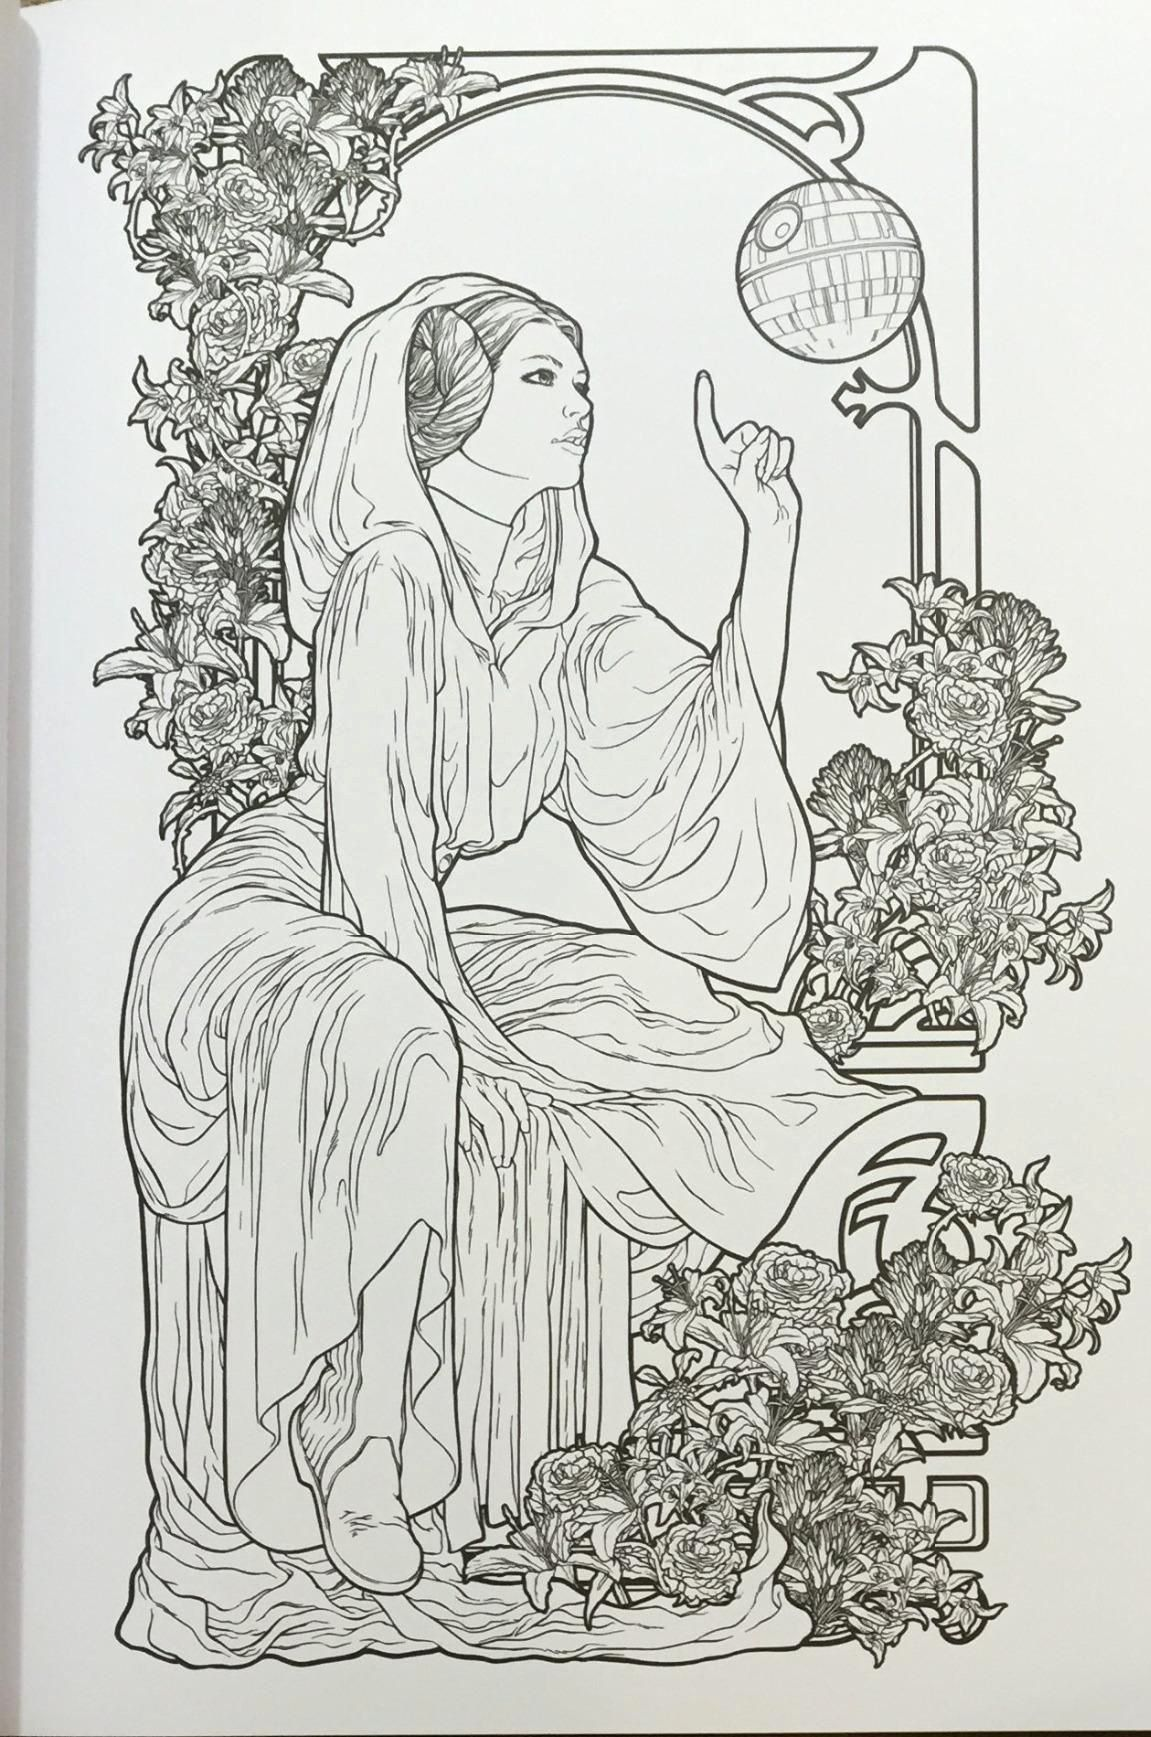 Fashion Coloring Book Pdf Luxury Art Of Coloring Star Wars 100 To Inspire Creativity Star Wars Coloring Book Coloring Book Art Star Wars Drawings